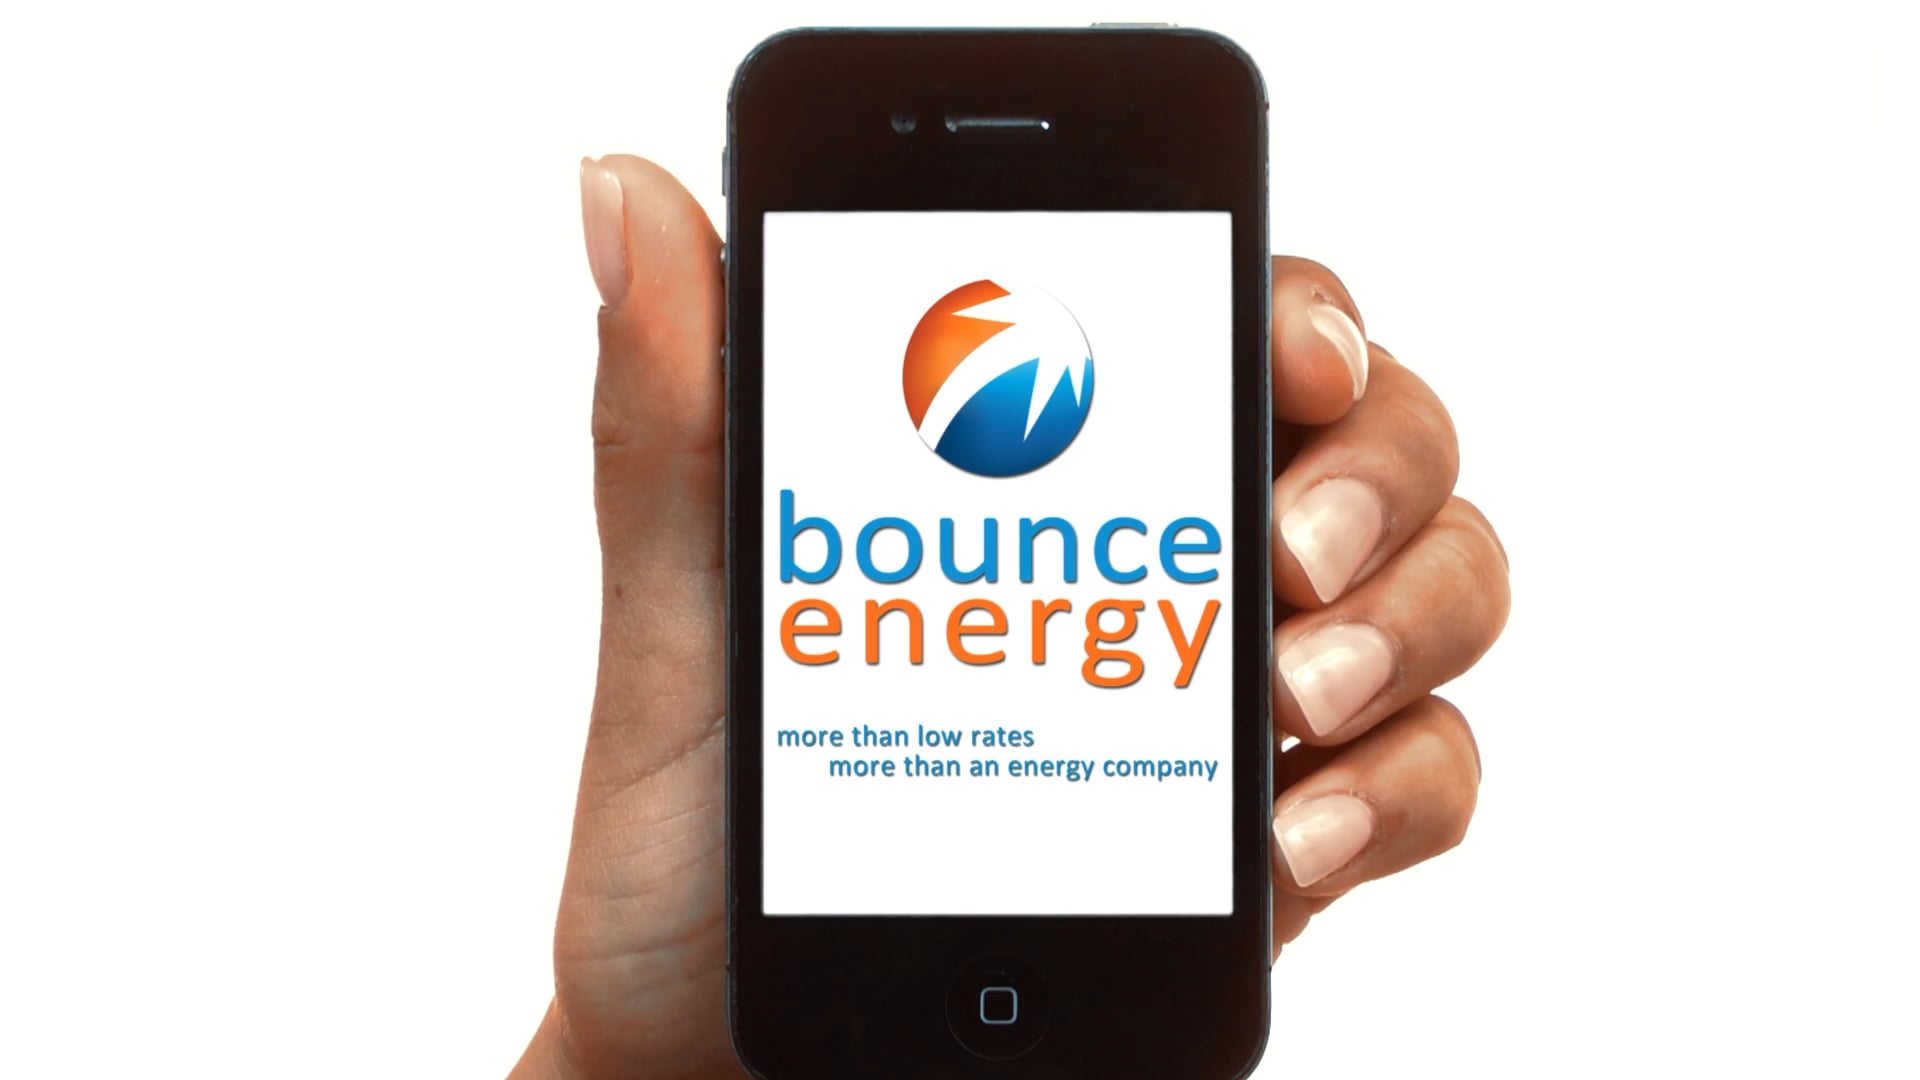 Introducing the Bounce Energy iPhone App